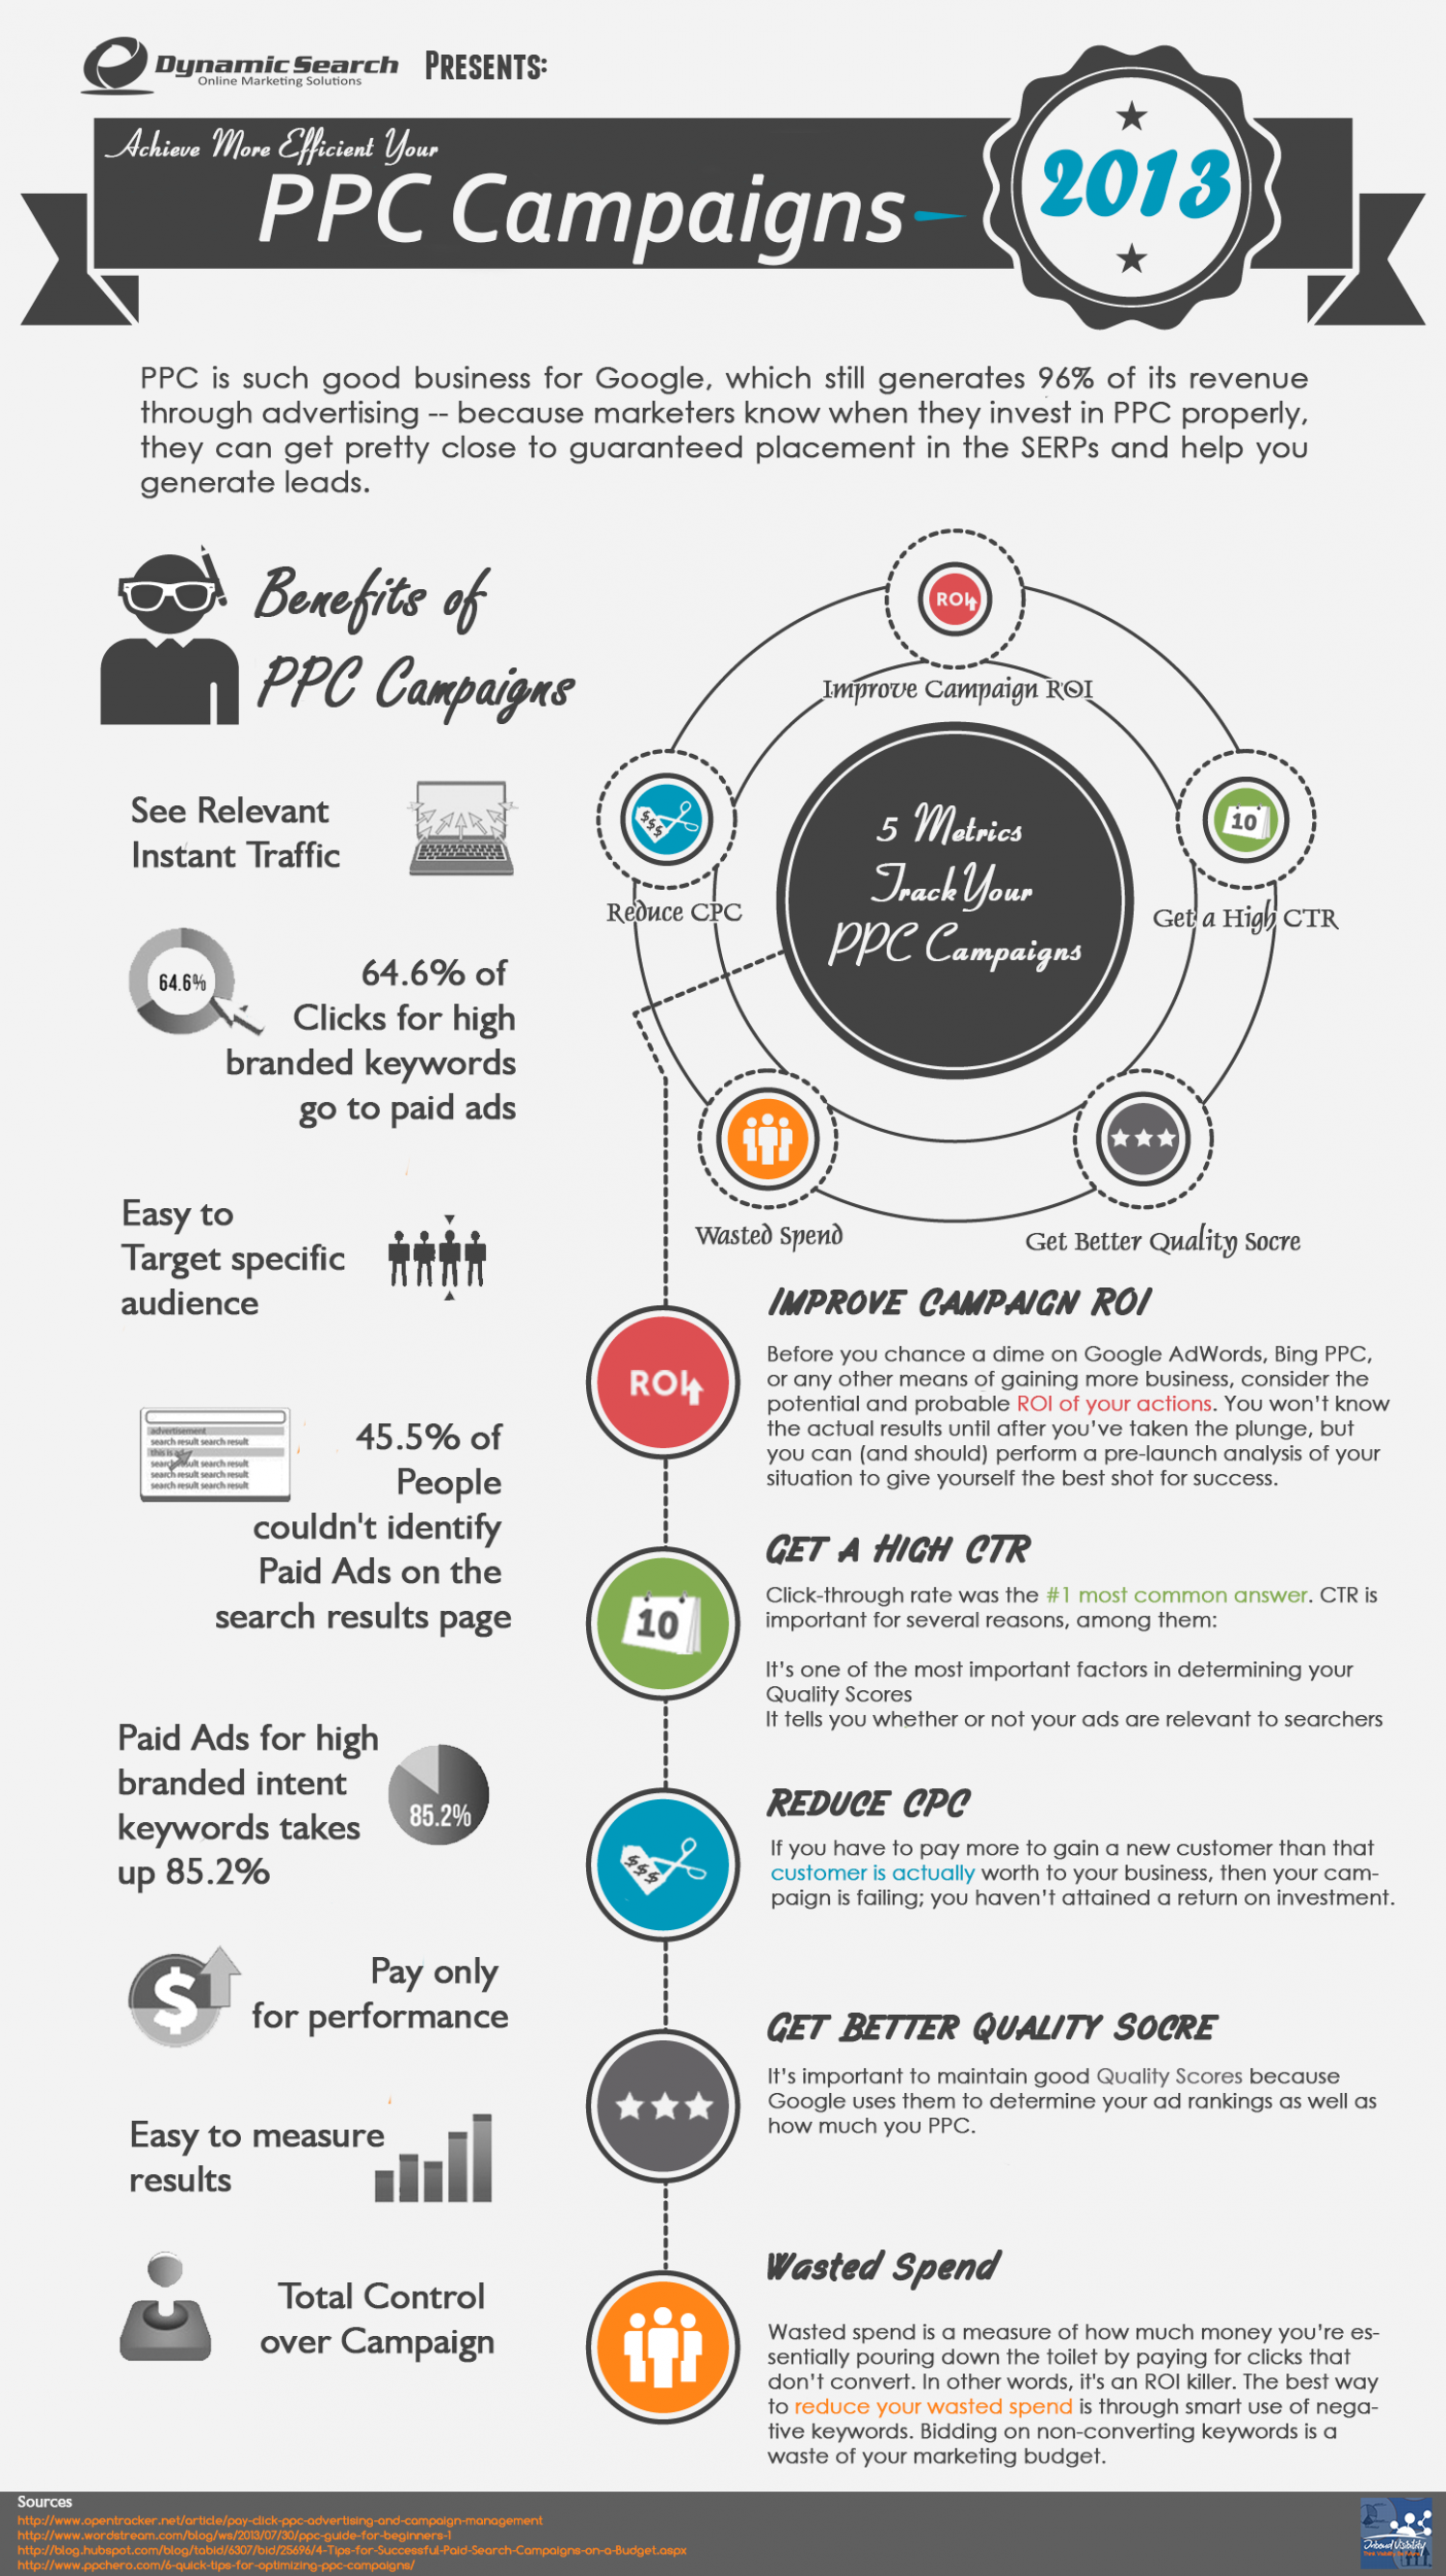 Achieve more Efficient your PPC Campaigns Infographic